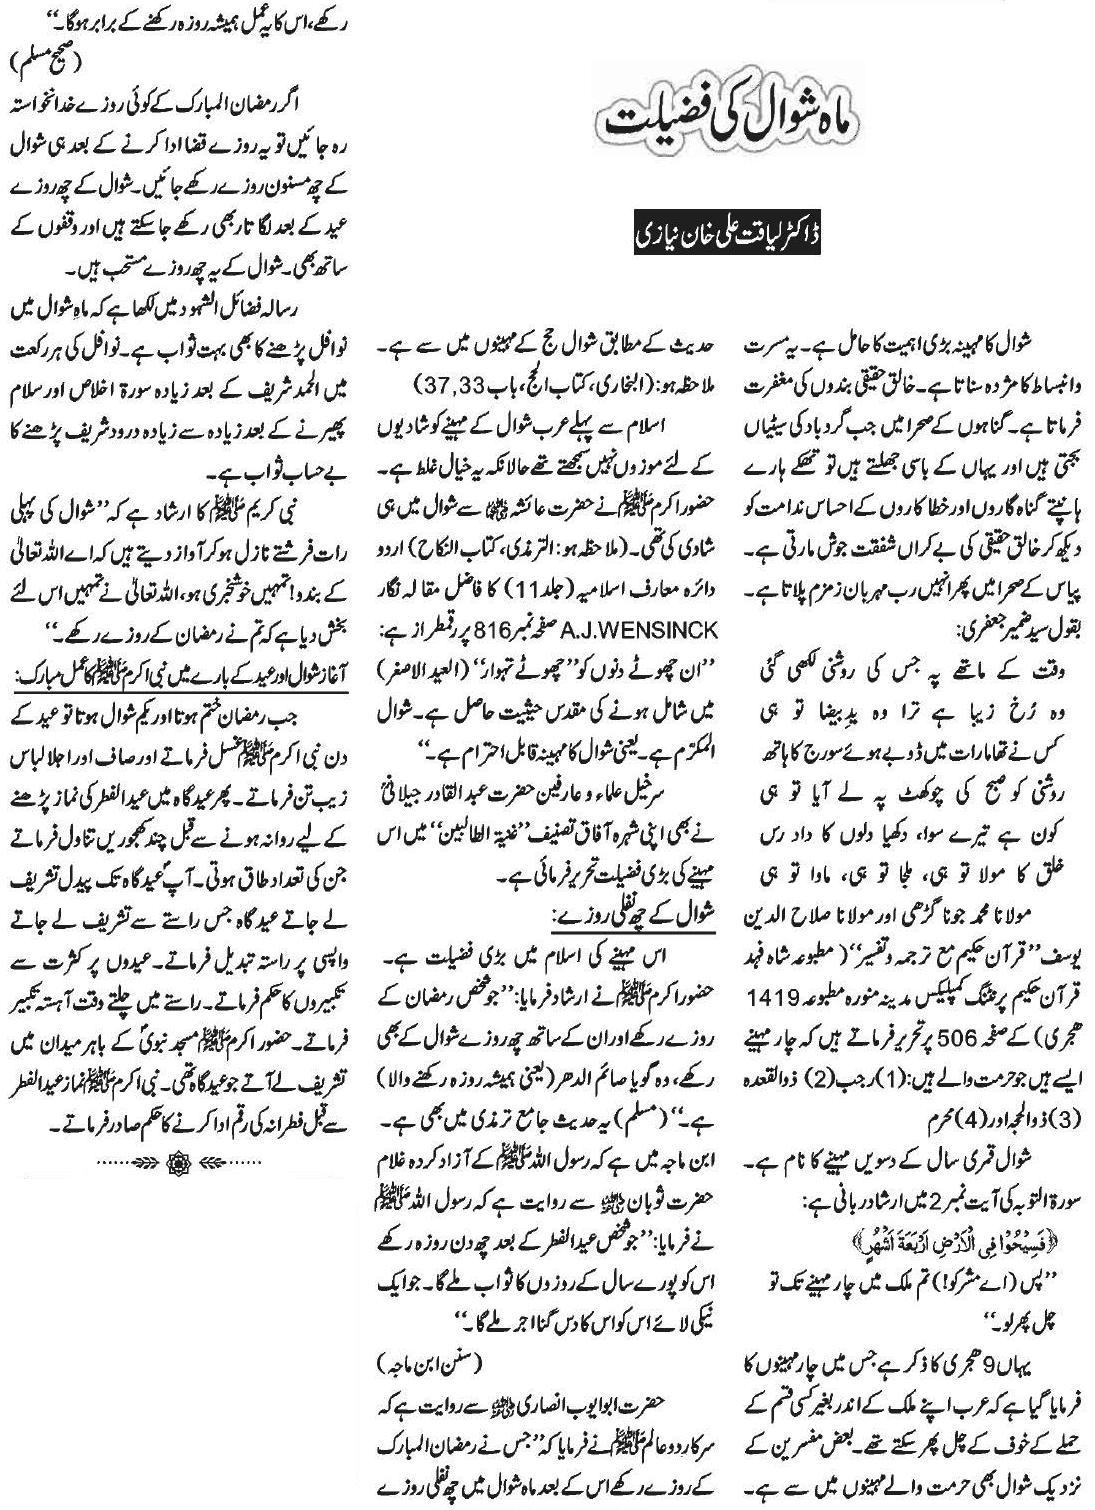 method of essay writing in urdu language Essay writing guide  marked by teachers essays  in the vast majority ofschools gcse maths, english language and science are compulsory and the other subjects.